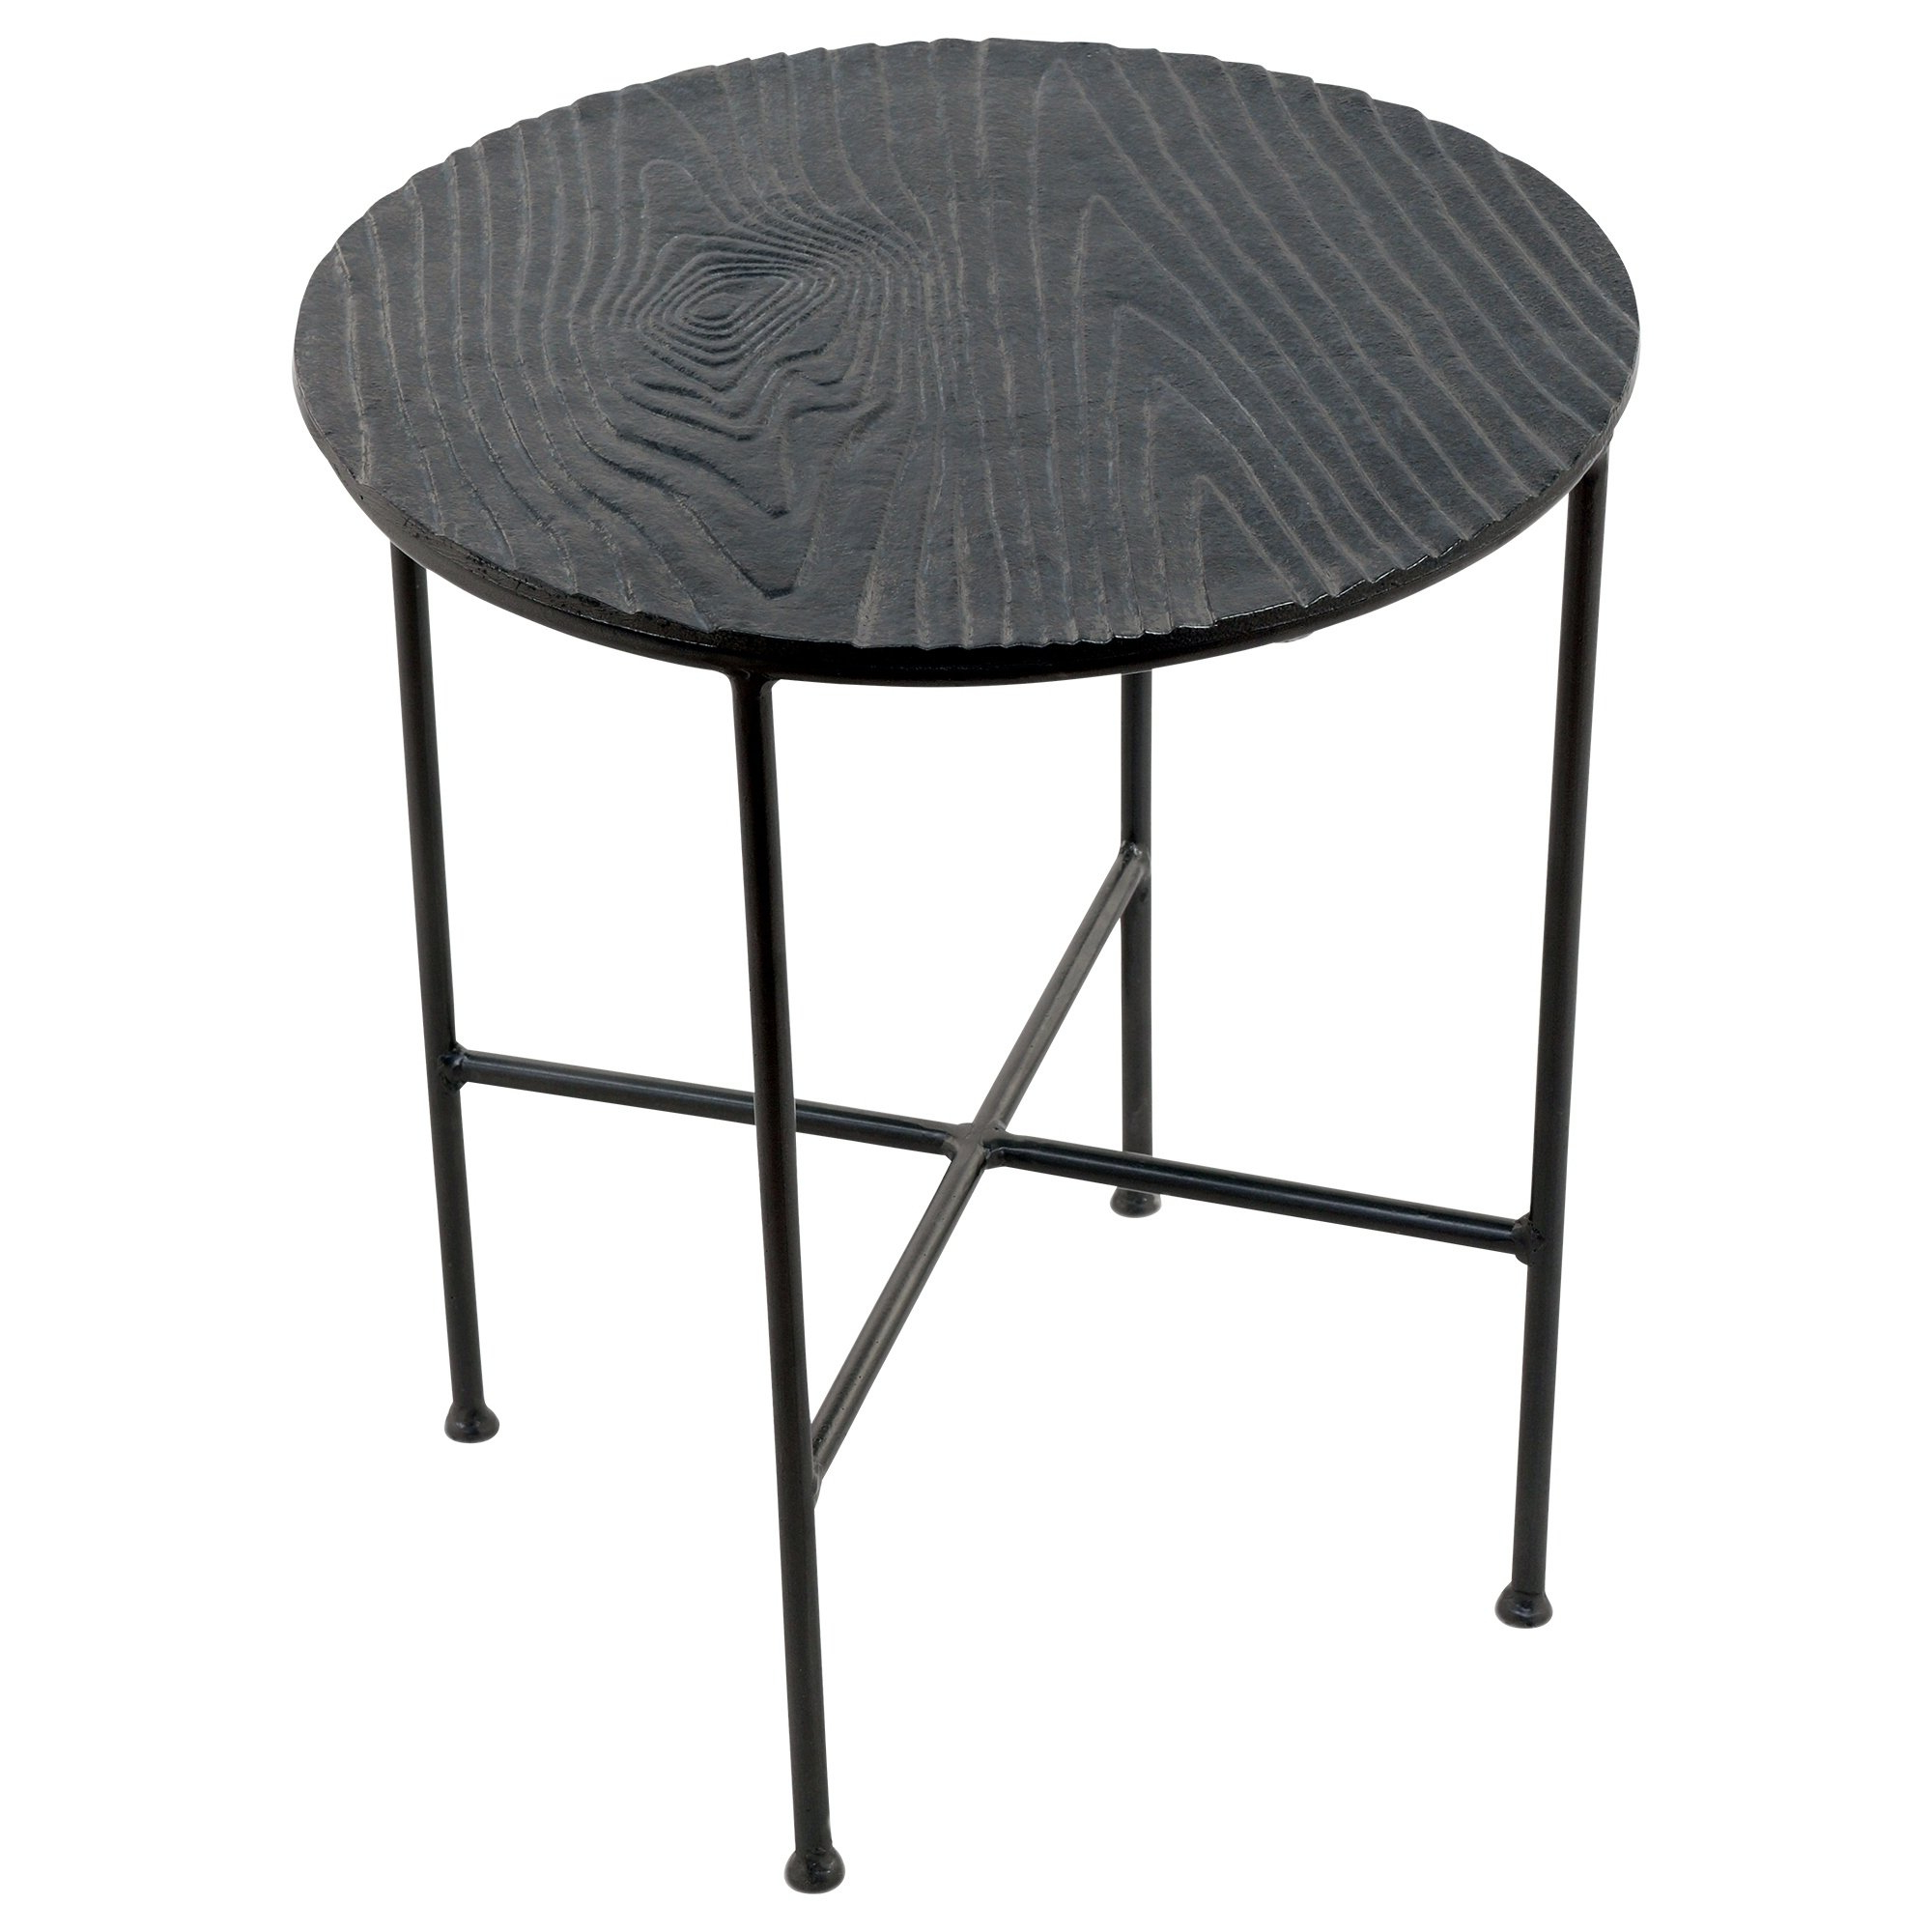 Most Recent Bale Rustic Grey Round Cocktail Tables With Storage Regarding Shop Renwil Bale Grey Aluminum Round Accent Table – Free Shipping (View 13 of 20)